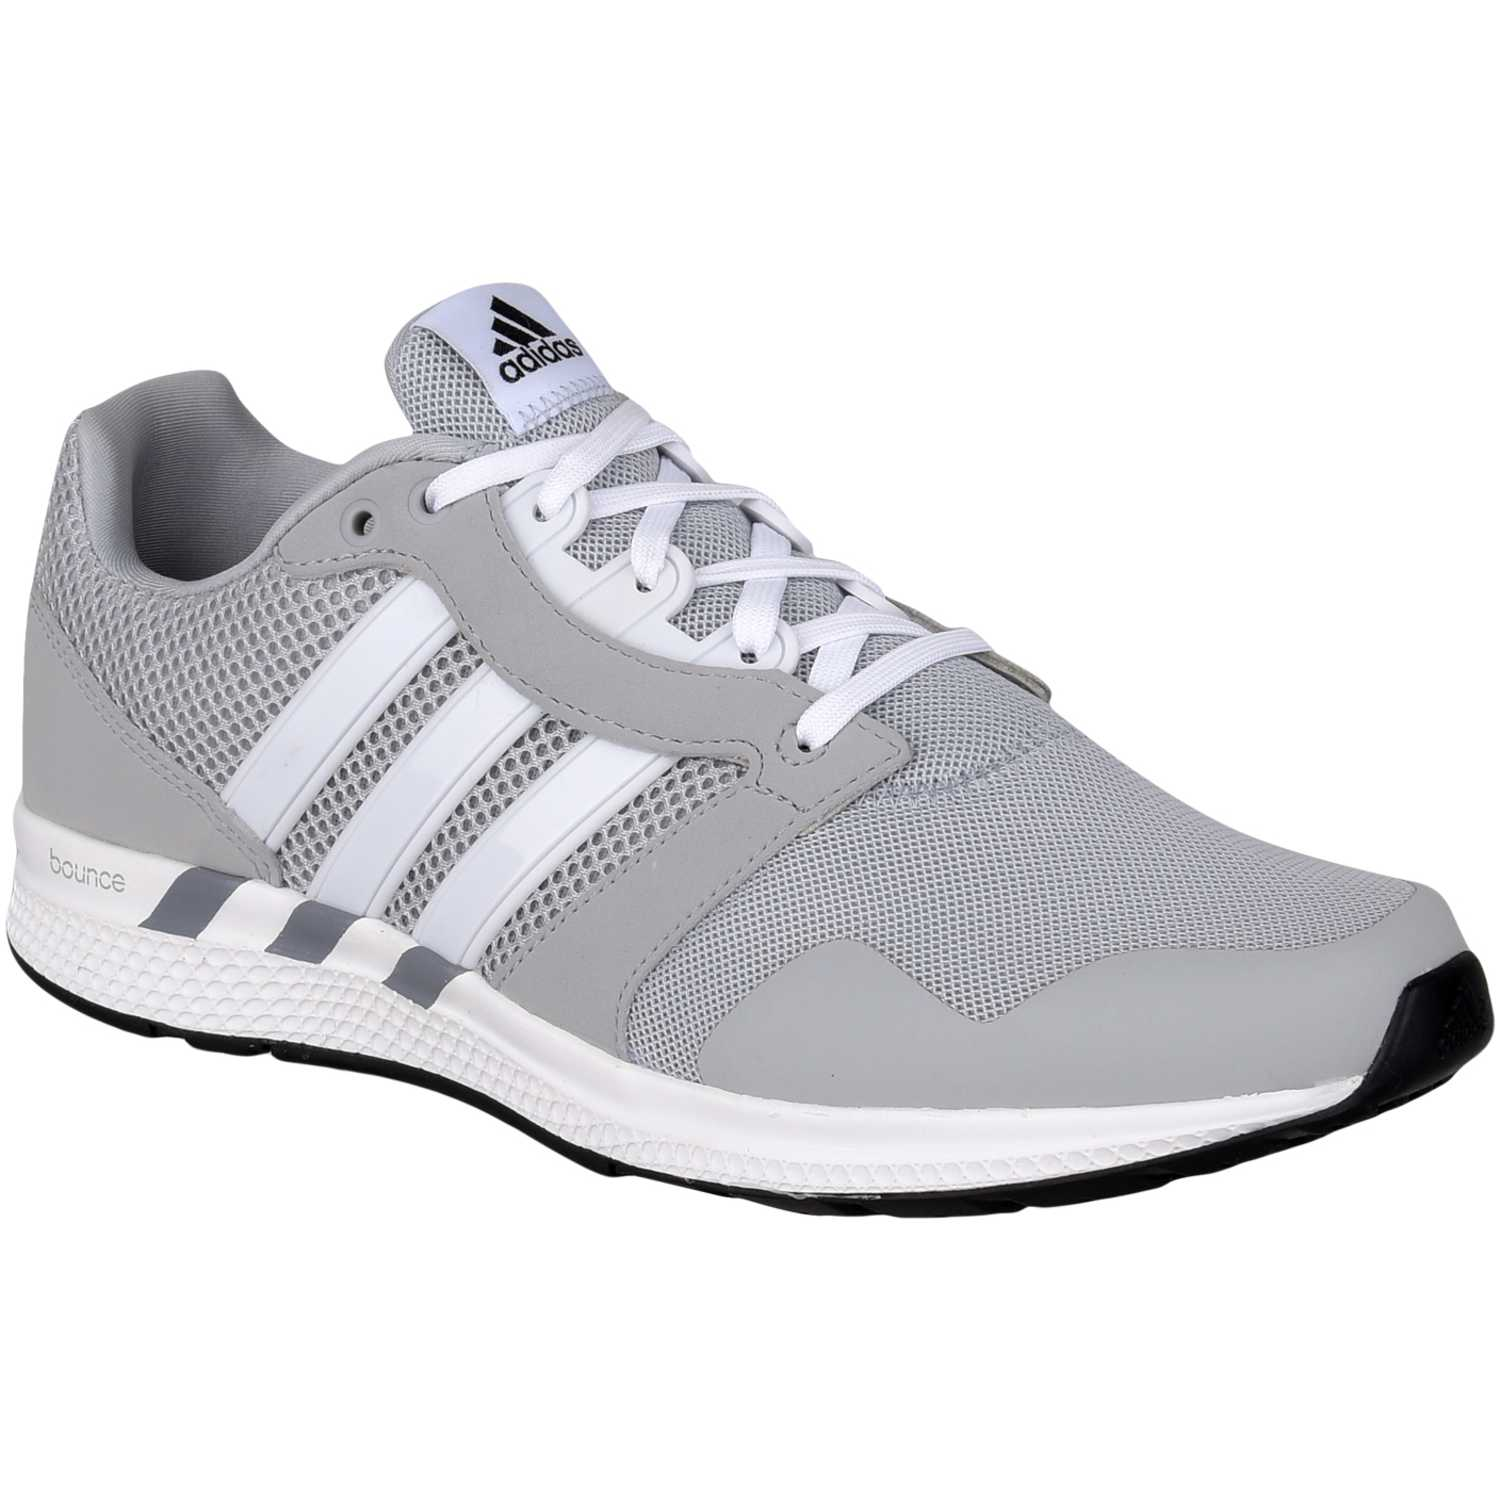 official photos 13580 63c88 Zapatilla de Hombre adidas Gris   Blanco equipment 16 m